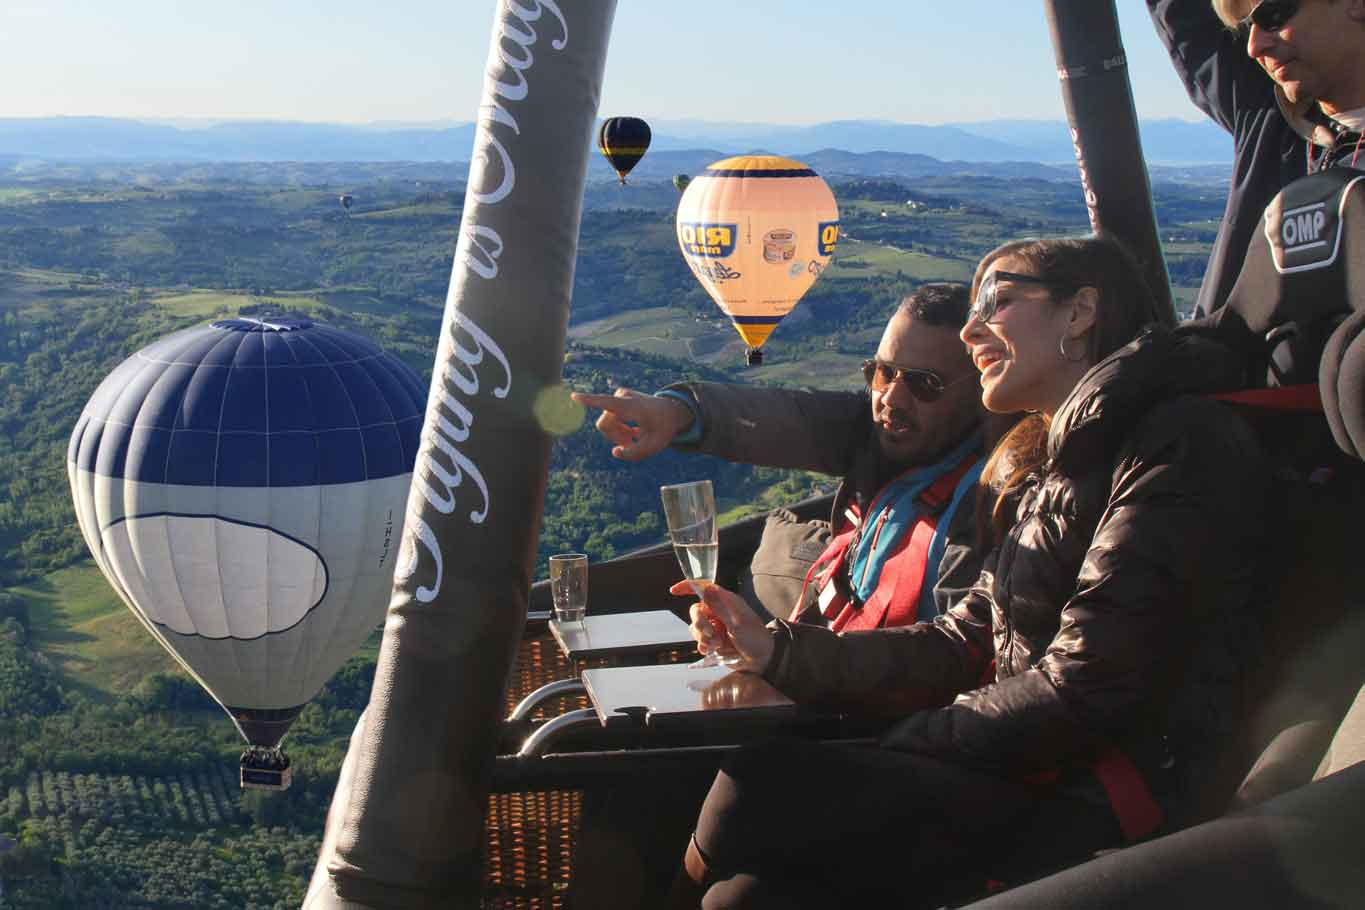 Vista super basket for luxury Ballooning in tuscany